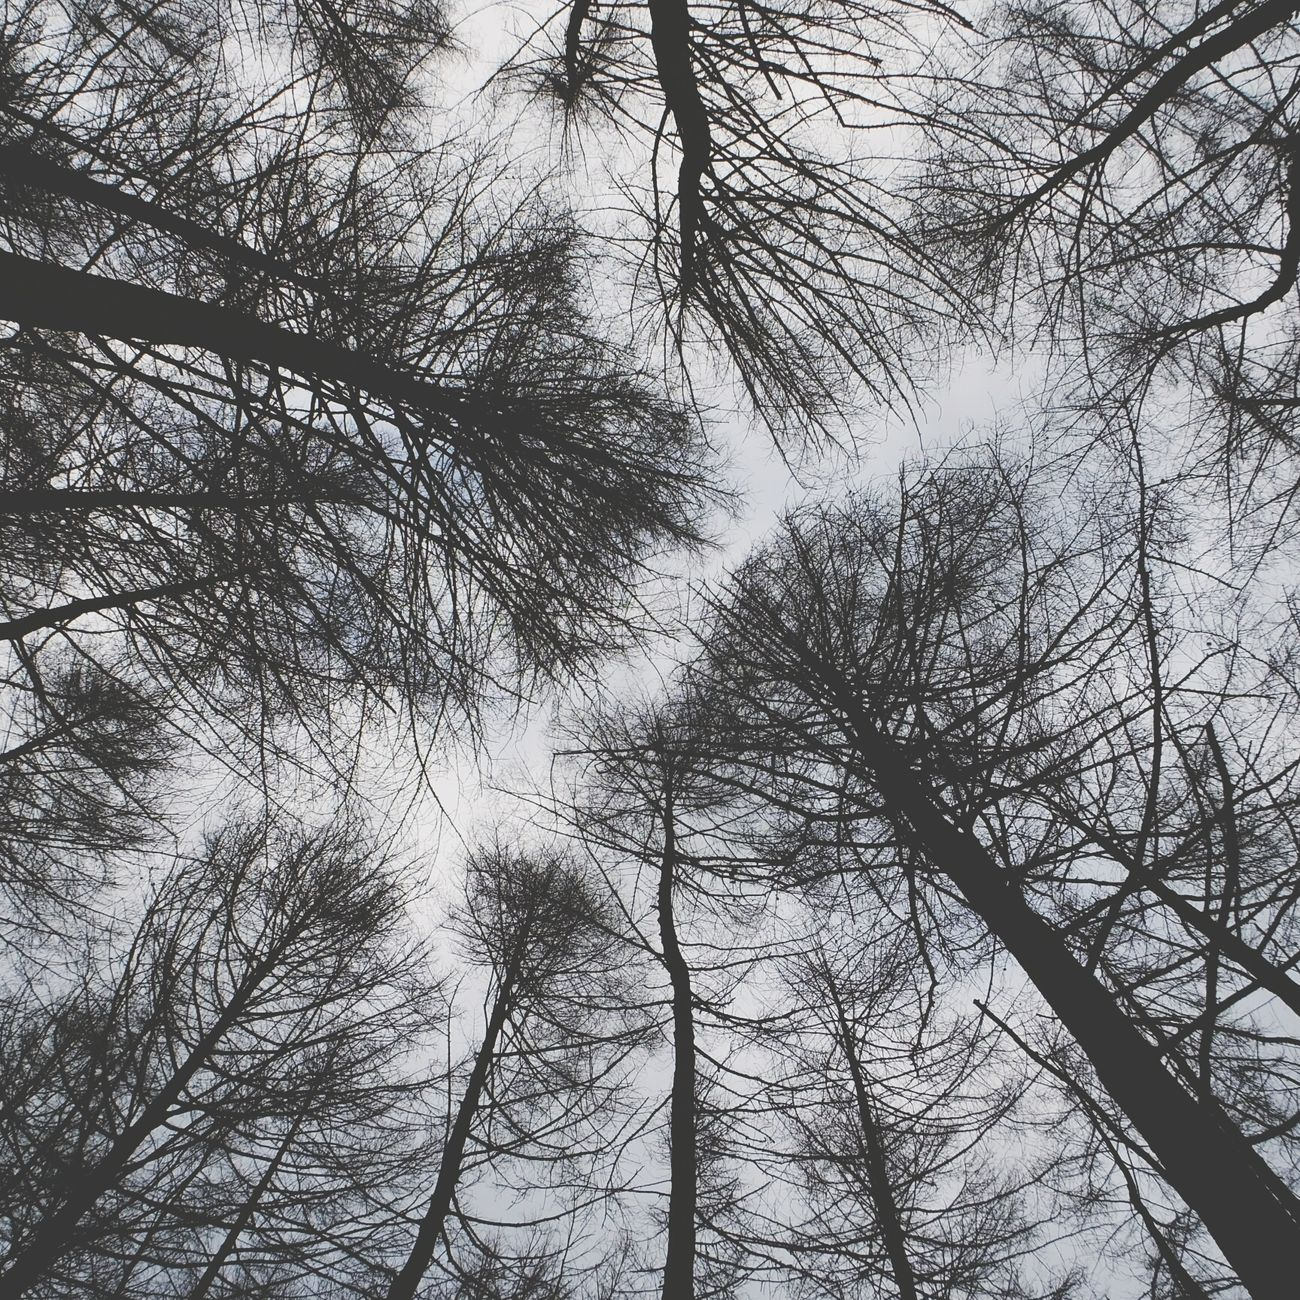 Looking up. Lunchtime on a trail near Bingley. West Yorkshire Looking Up Randombranchiness Treescollection